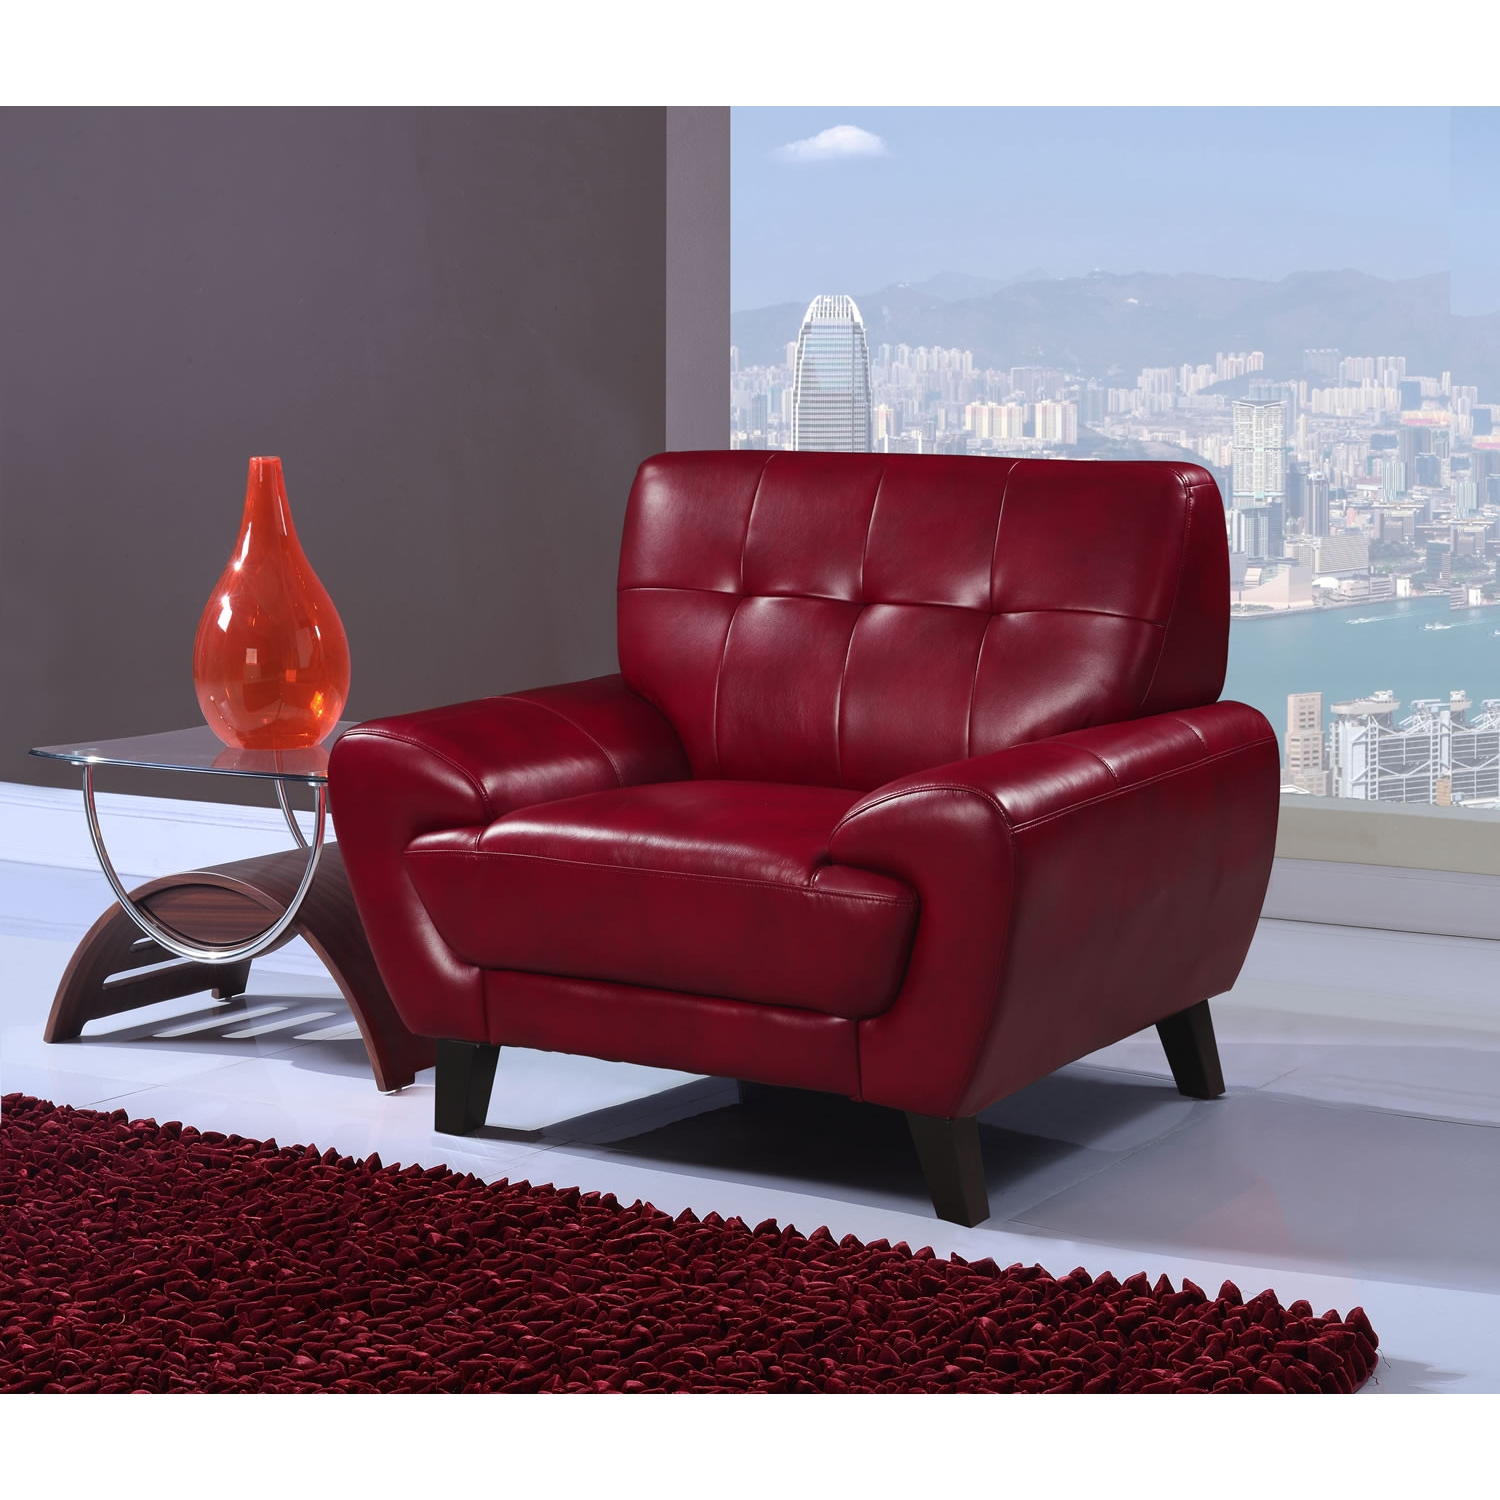 Juliana Leather Chair in Blanche Red - GLO-U7400-CH